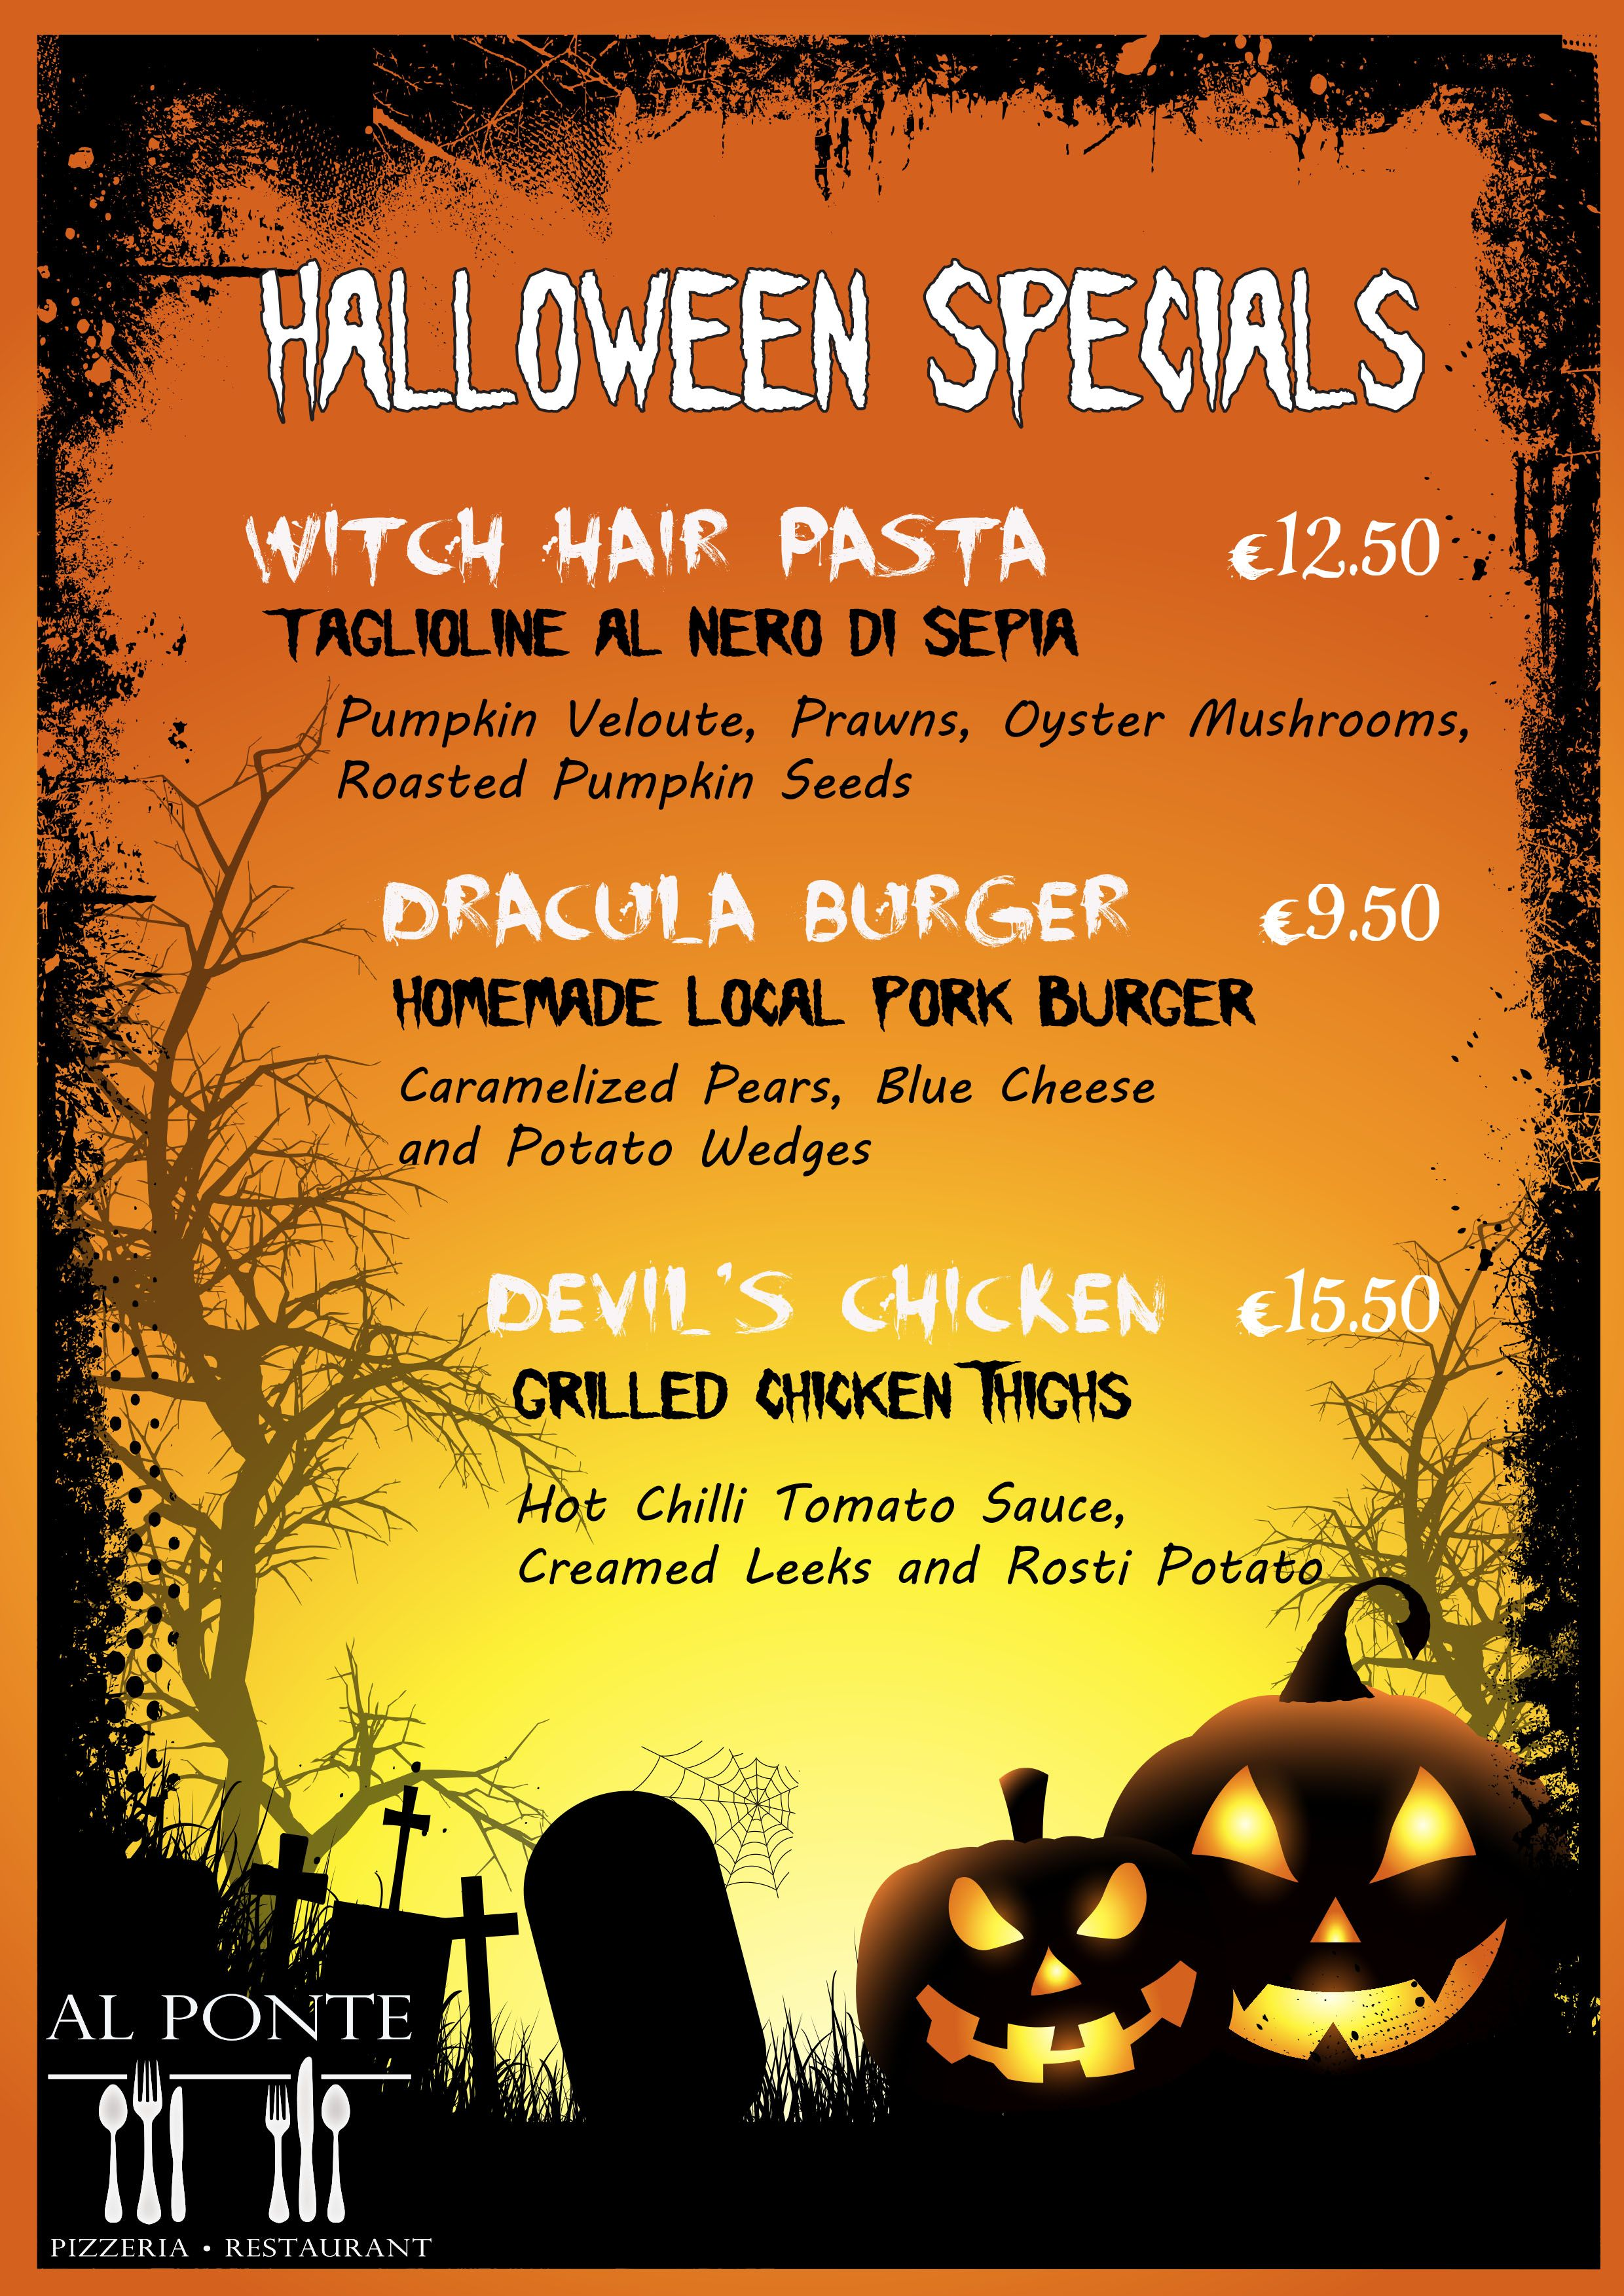 Happy Halloween everyone 👻🎃 TREAT yourself with our